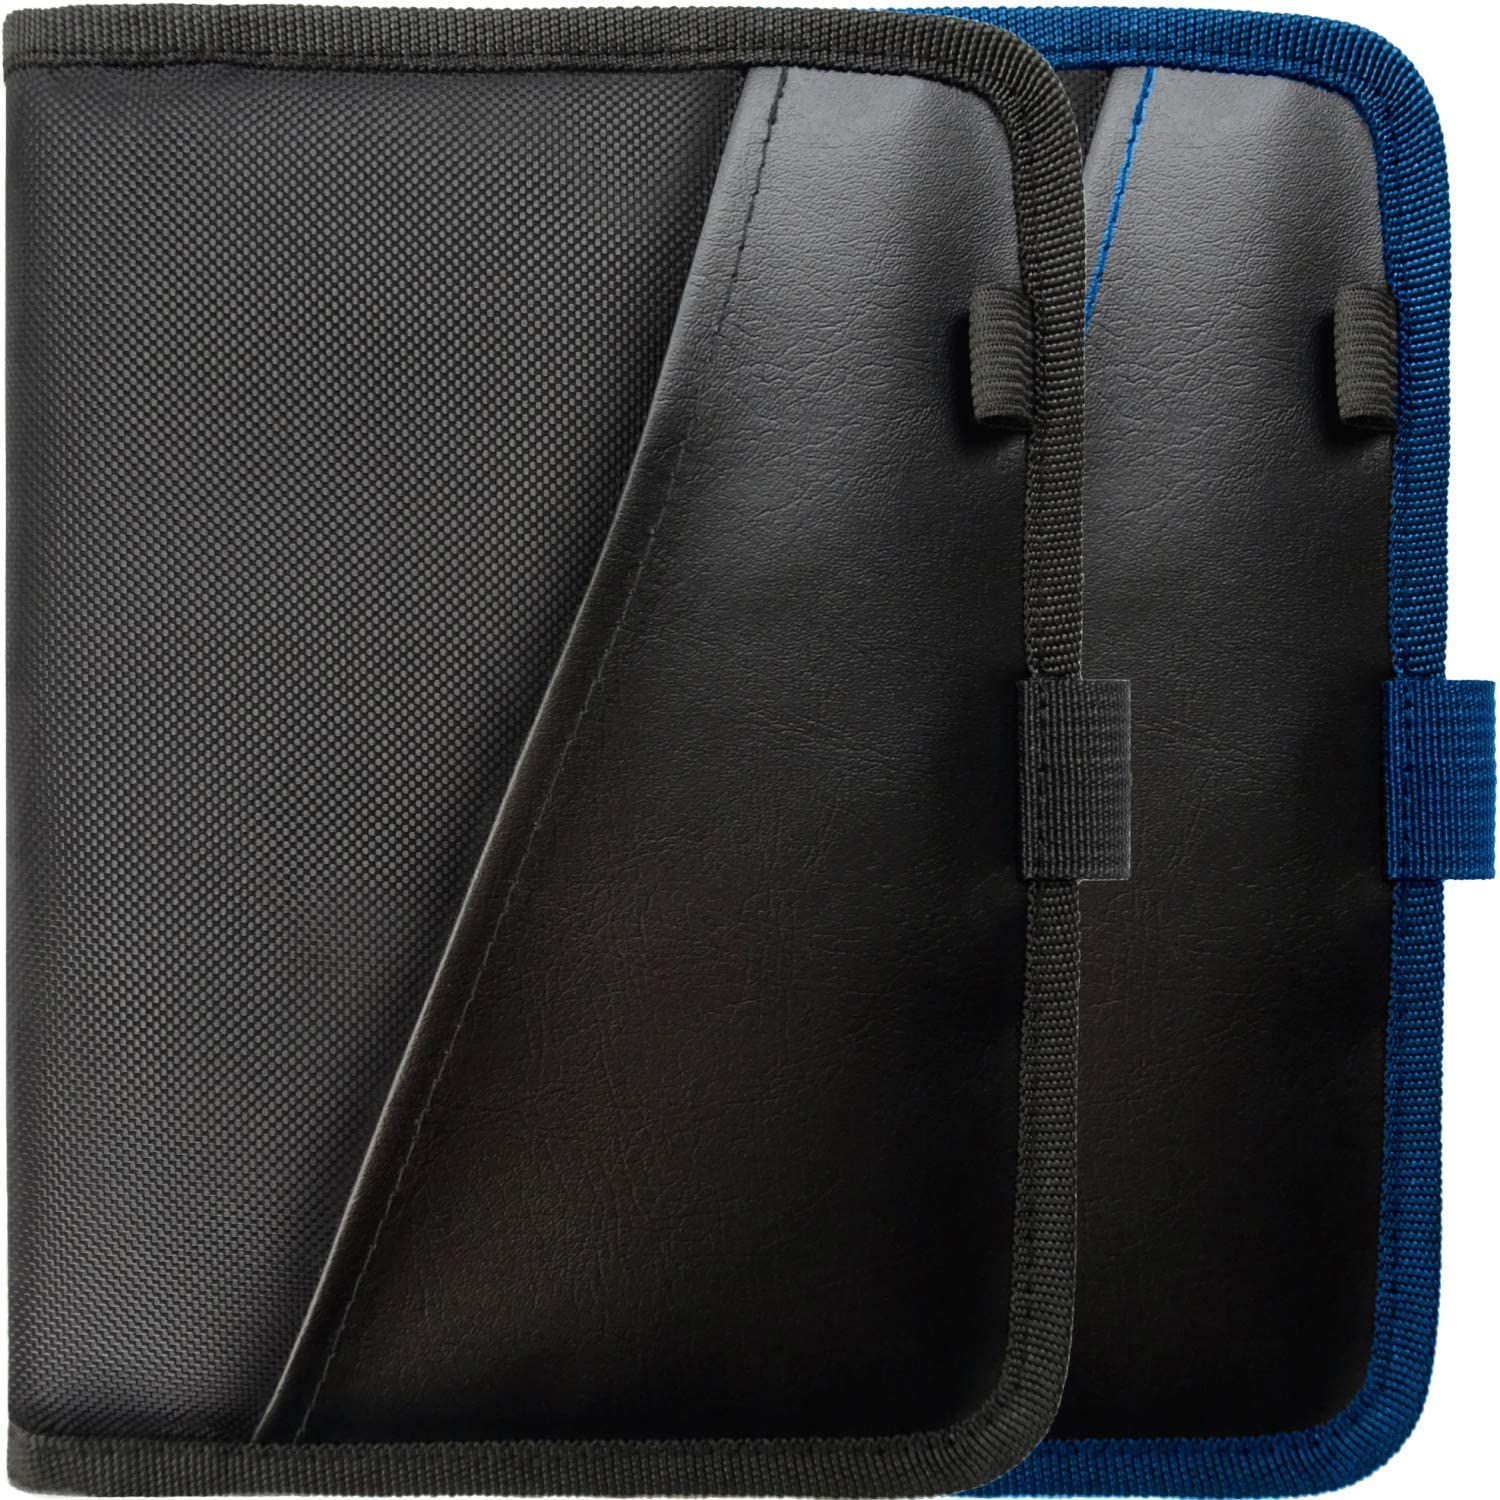 Glove Box Max 86% OFF Compartment Organizer Popularity - Owner Car Document Ma Holder